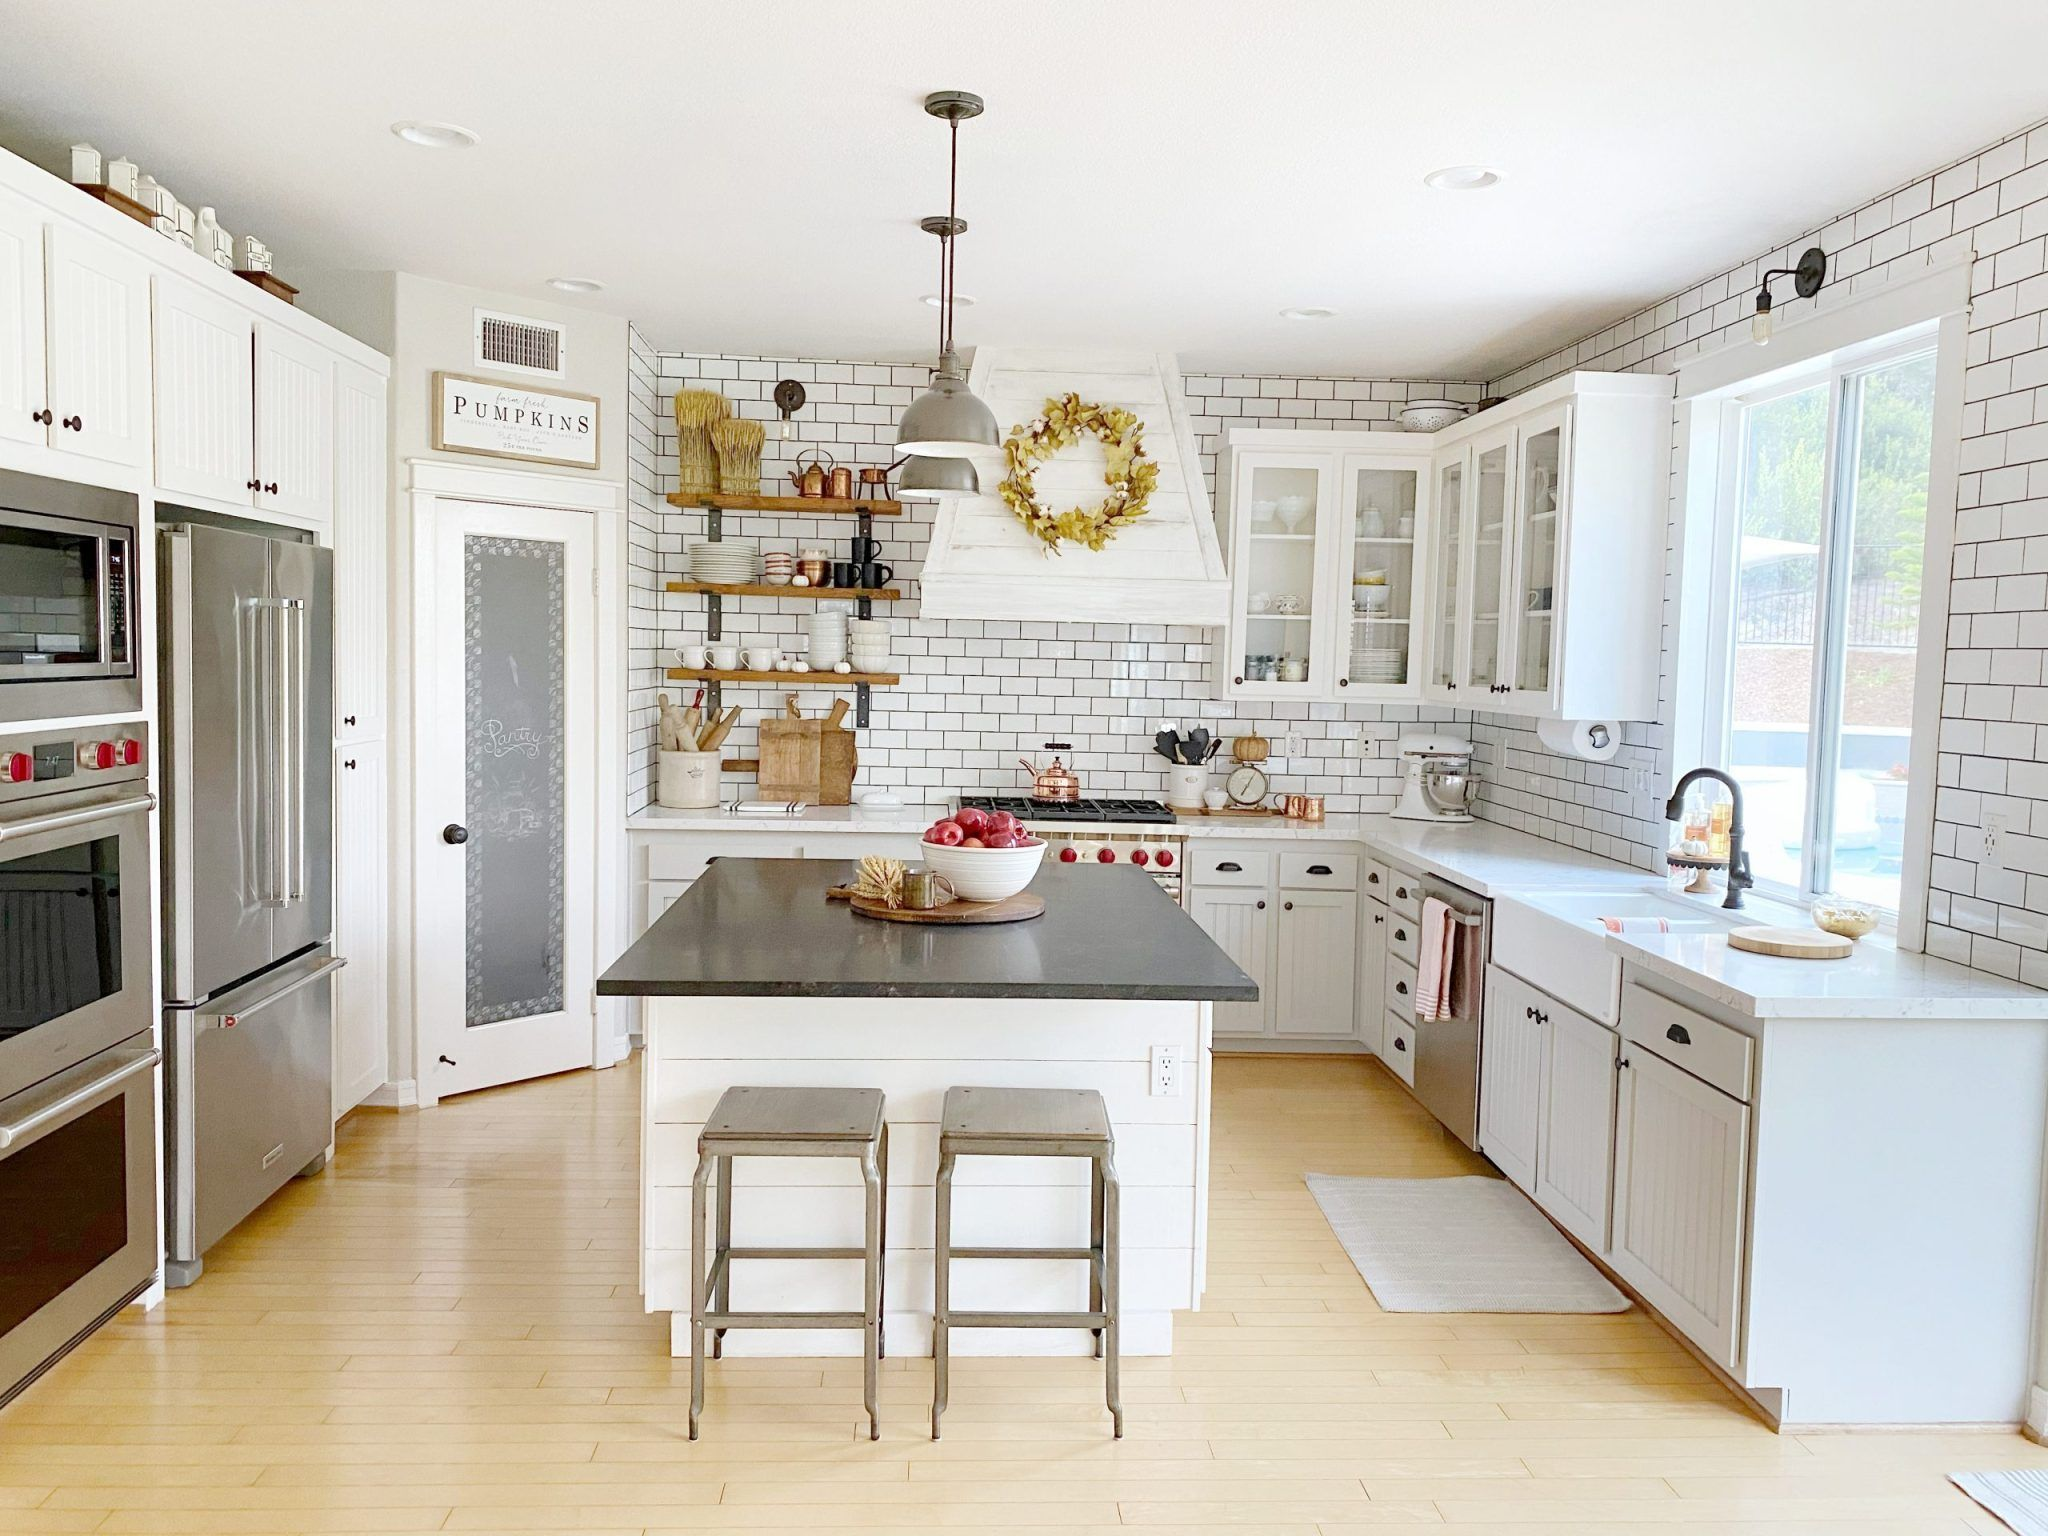 We Did A Kitchen Remodel But In A Backwards Way Kitchen Remodel Home Kitchens Kitchen Inspirations